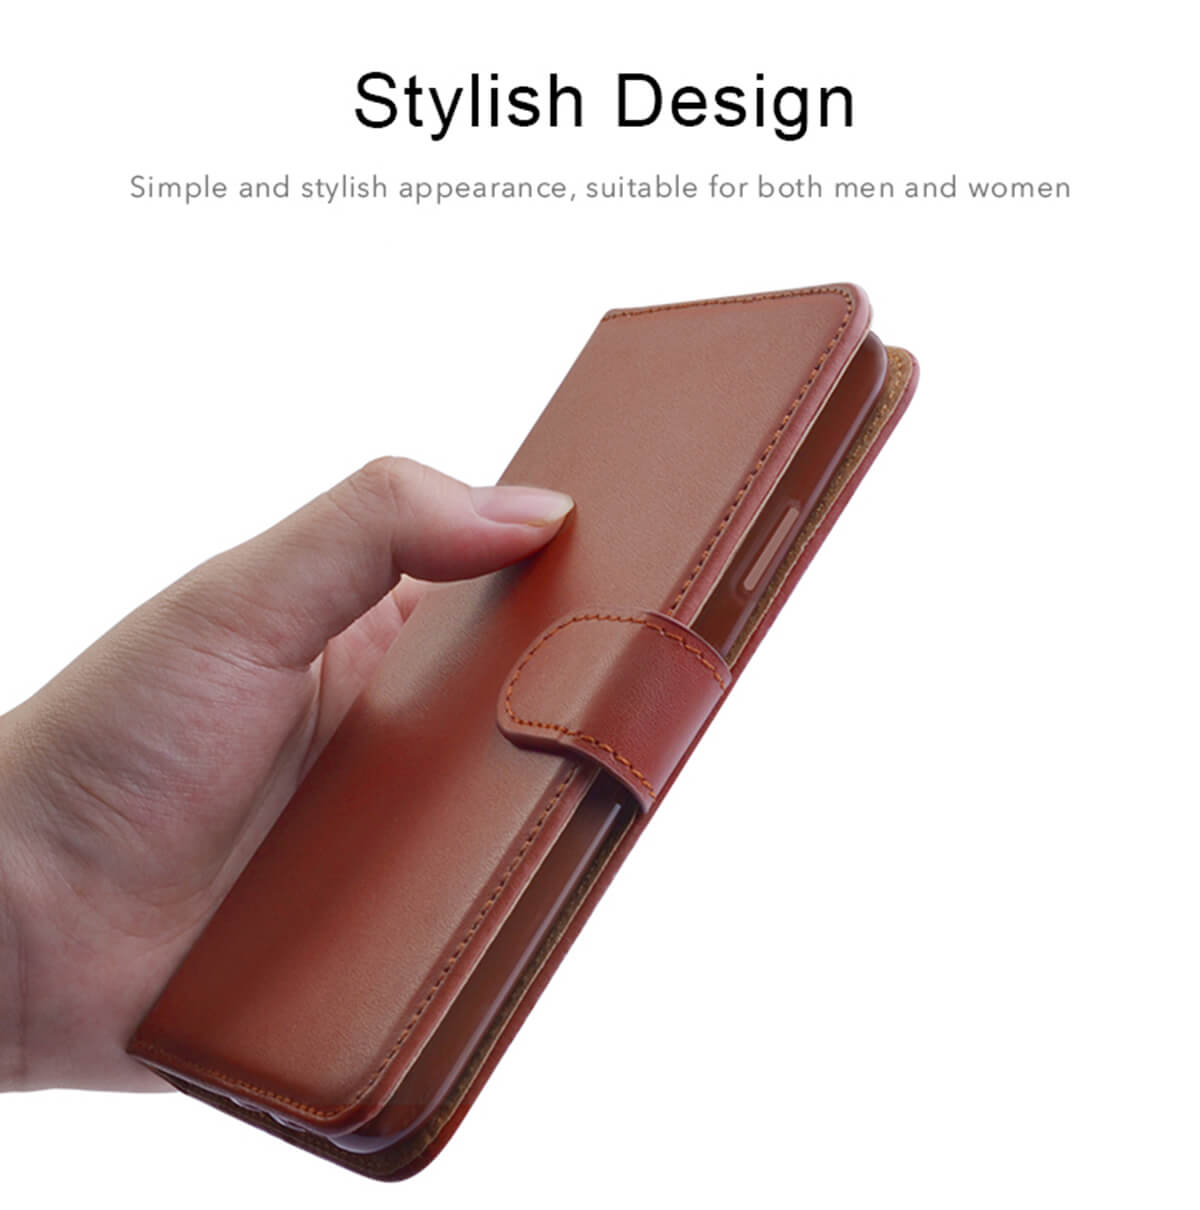 Leather-Flip-Wallet-Magnetic-Case-Cover-For-Samsung-Galaxy-S10-Plus-S9-S8-A50 thumbnail 20